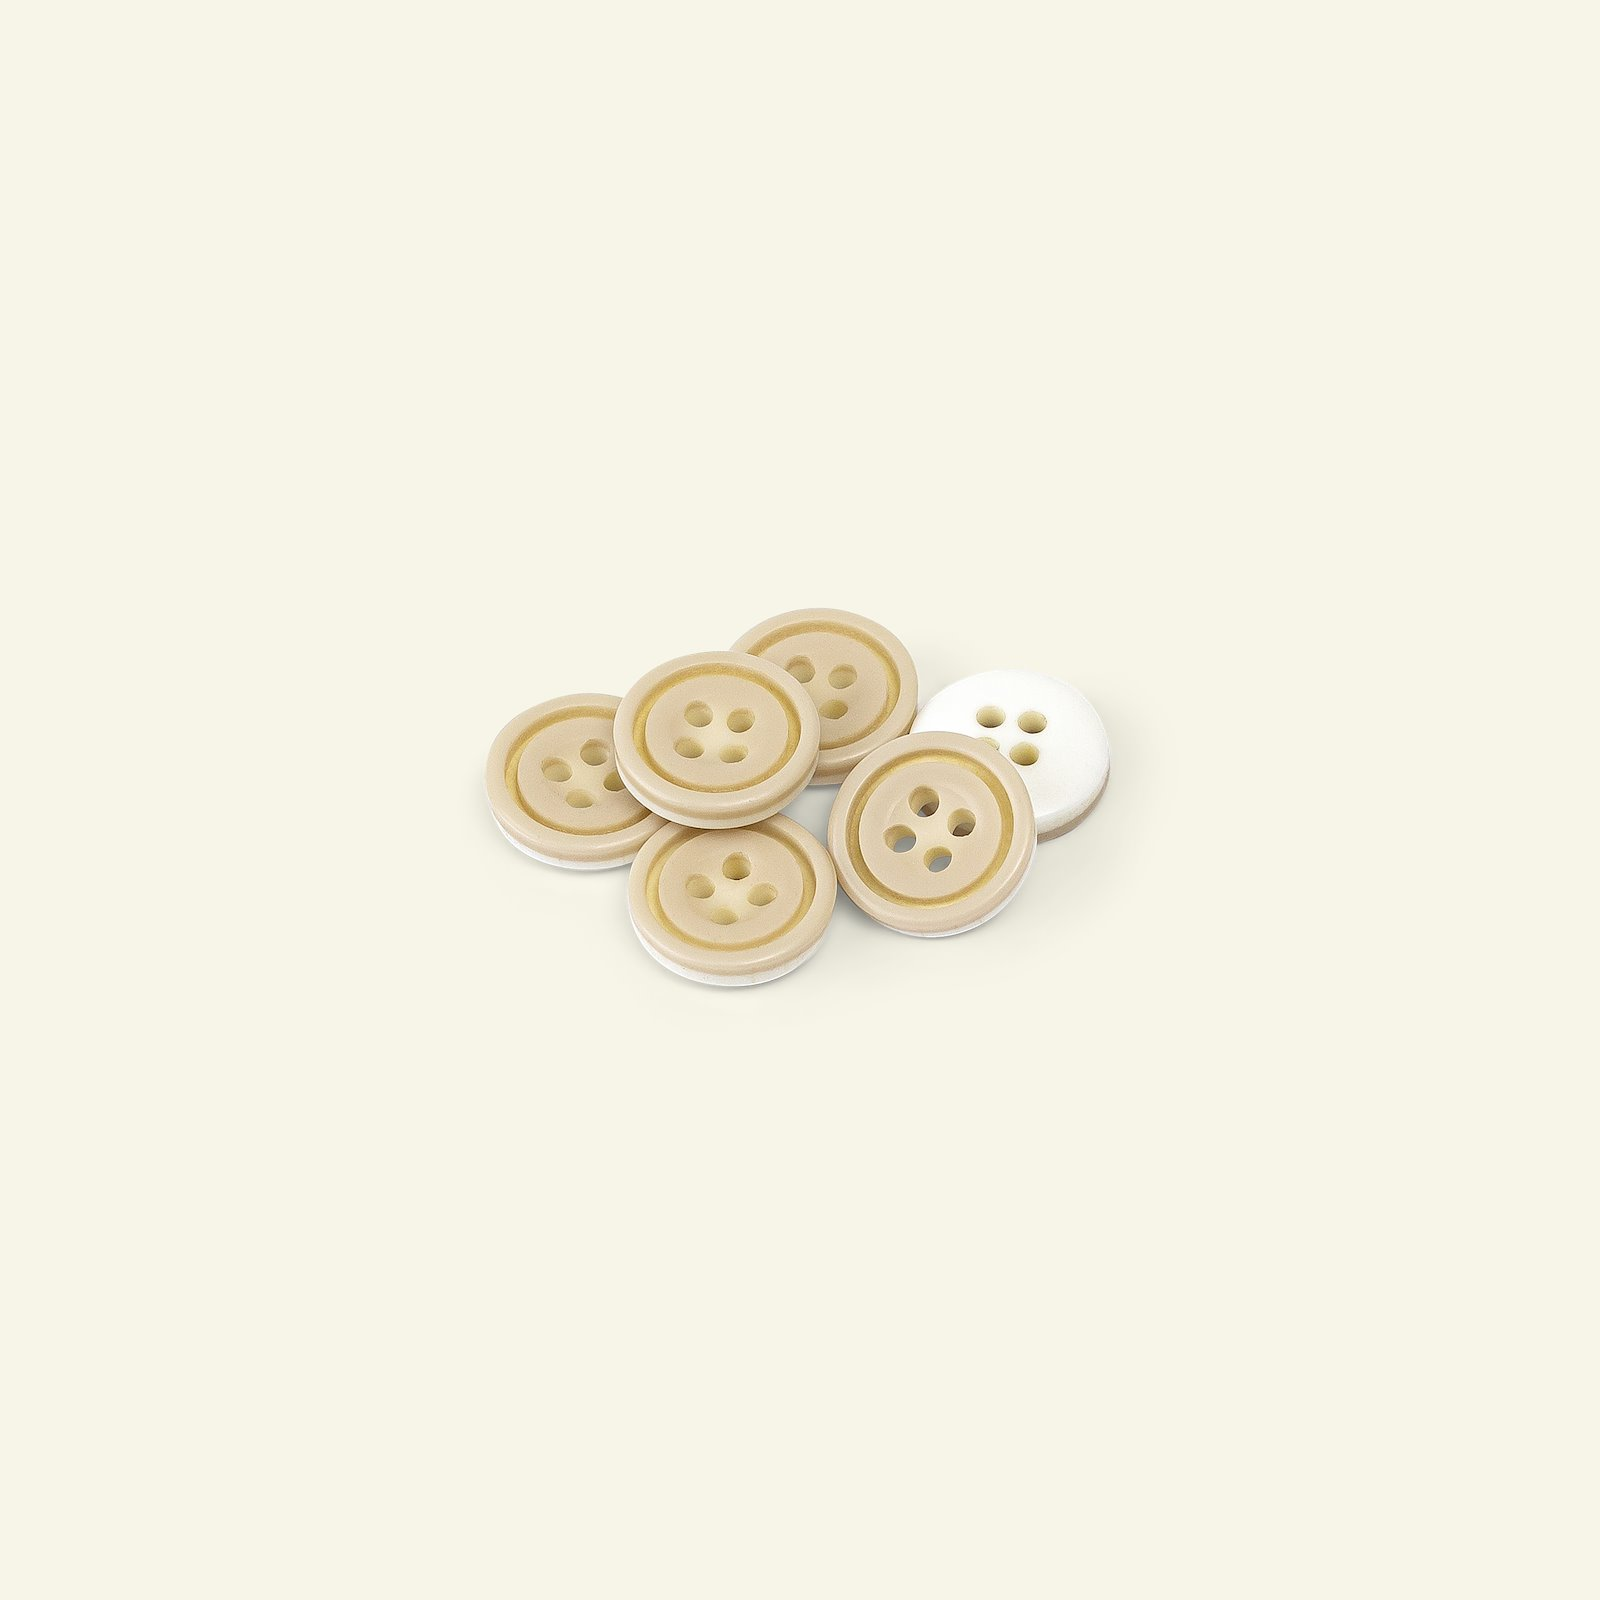 Button 4-holes w/rim 14mm brown/white 6p 33068_pack